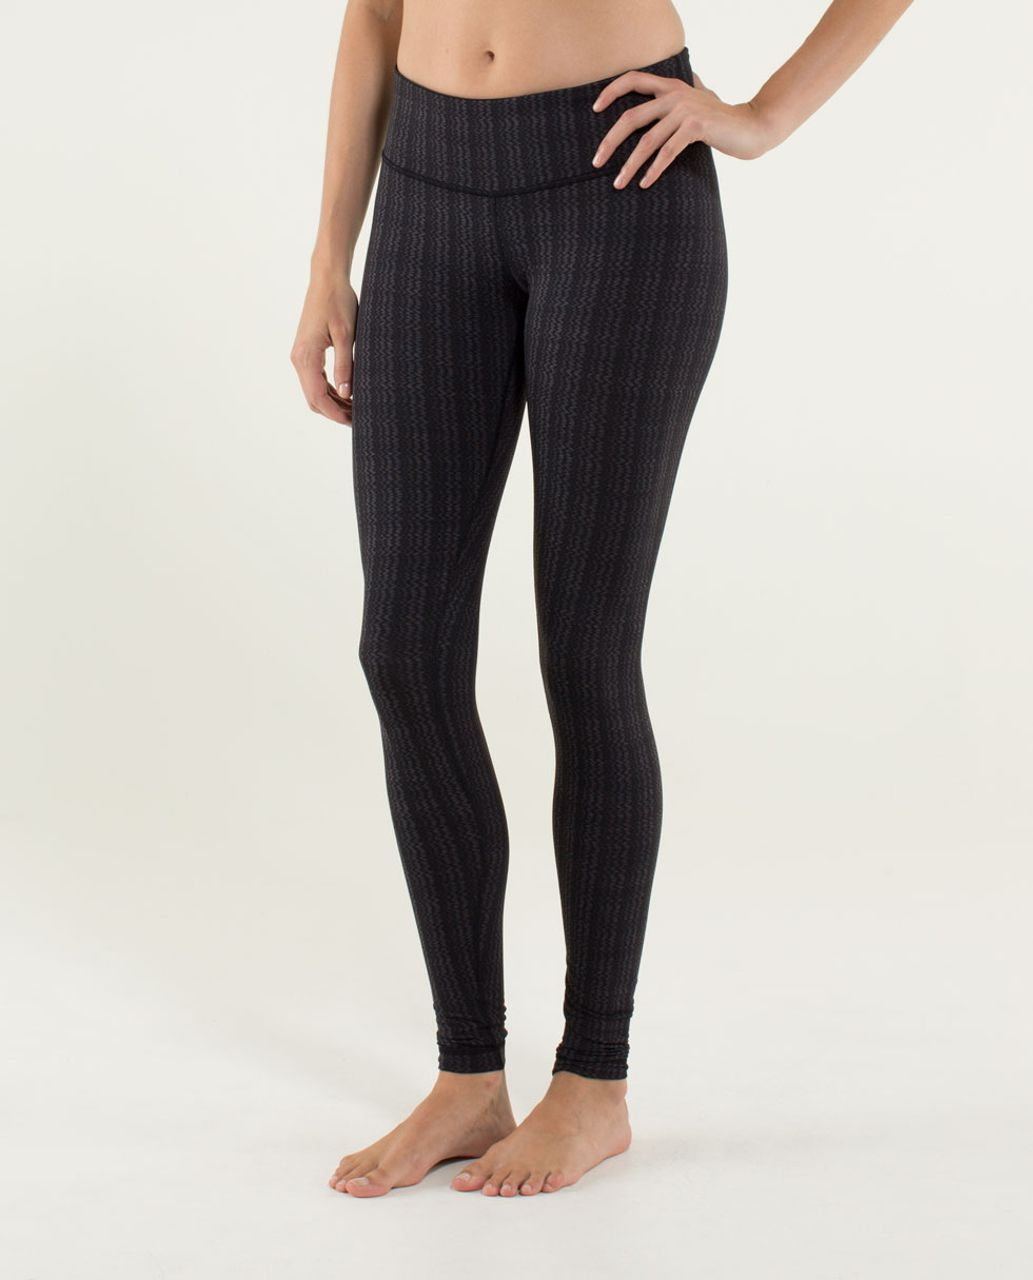 Lululemon Wunder Under Pant *Textured - Ziggy Wee September Black / Black